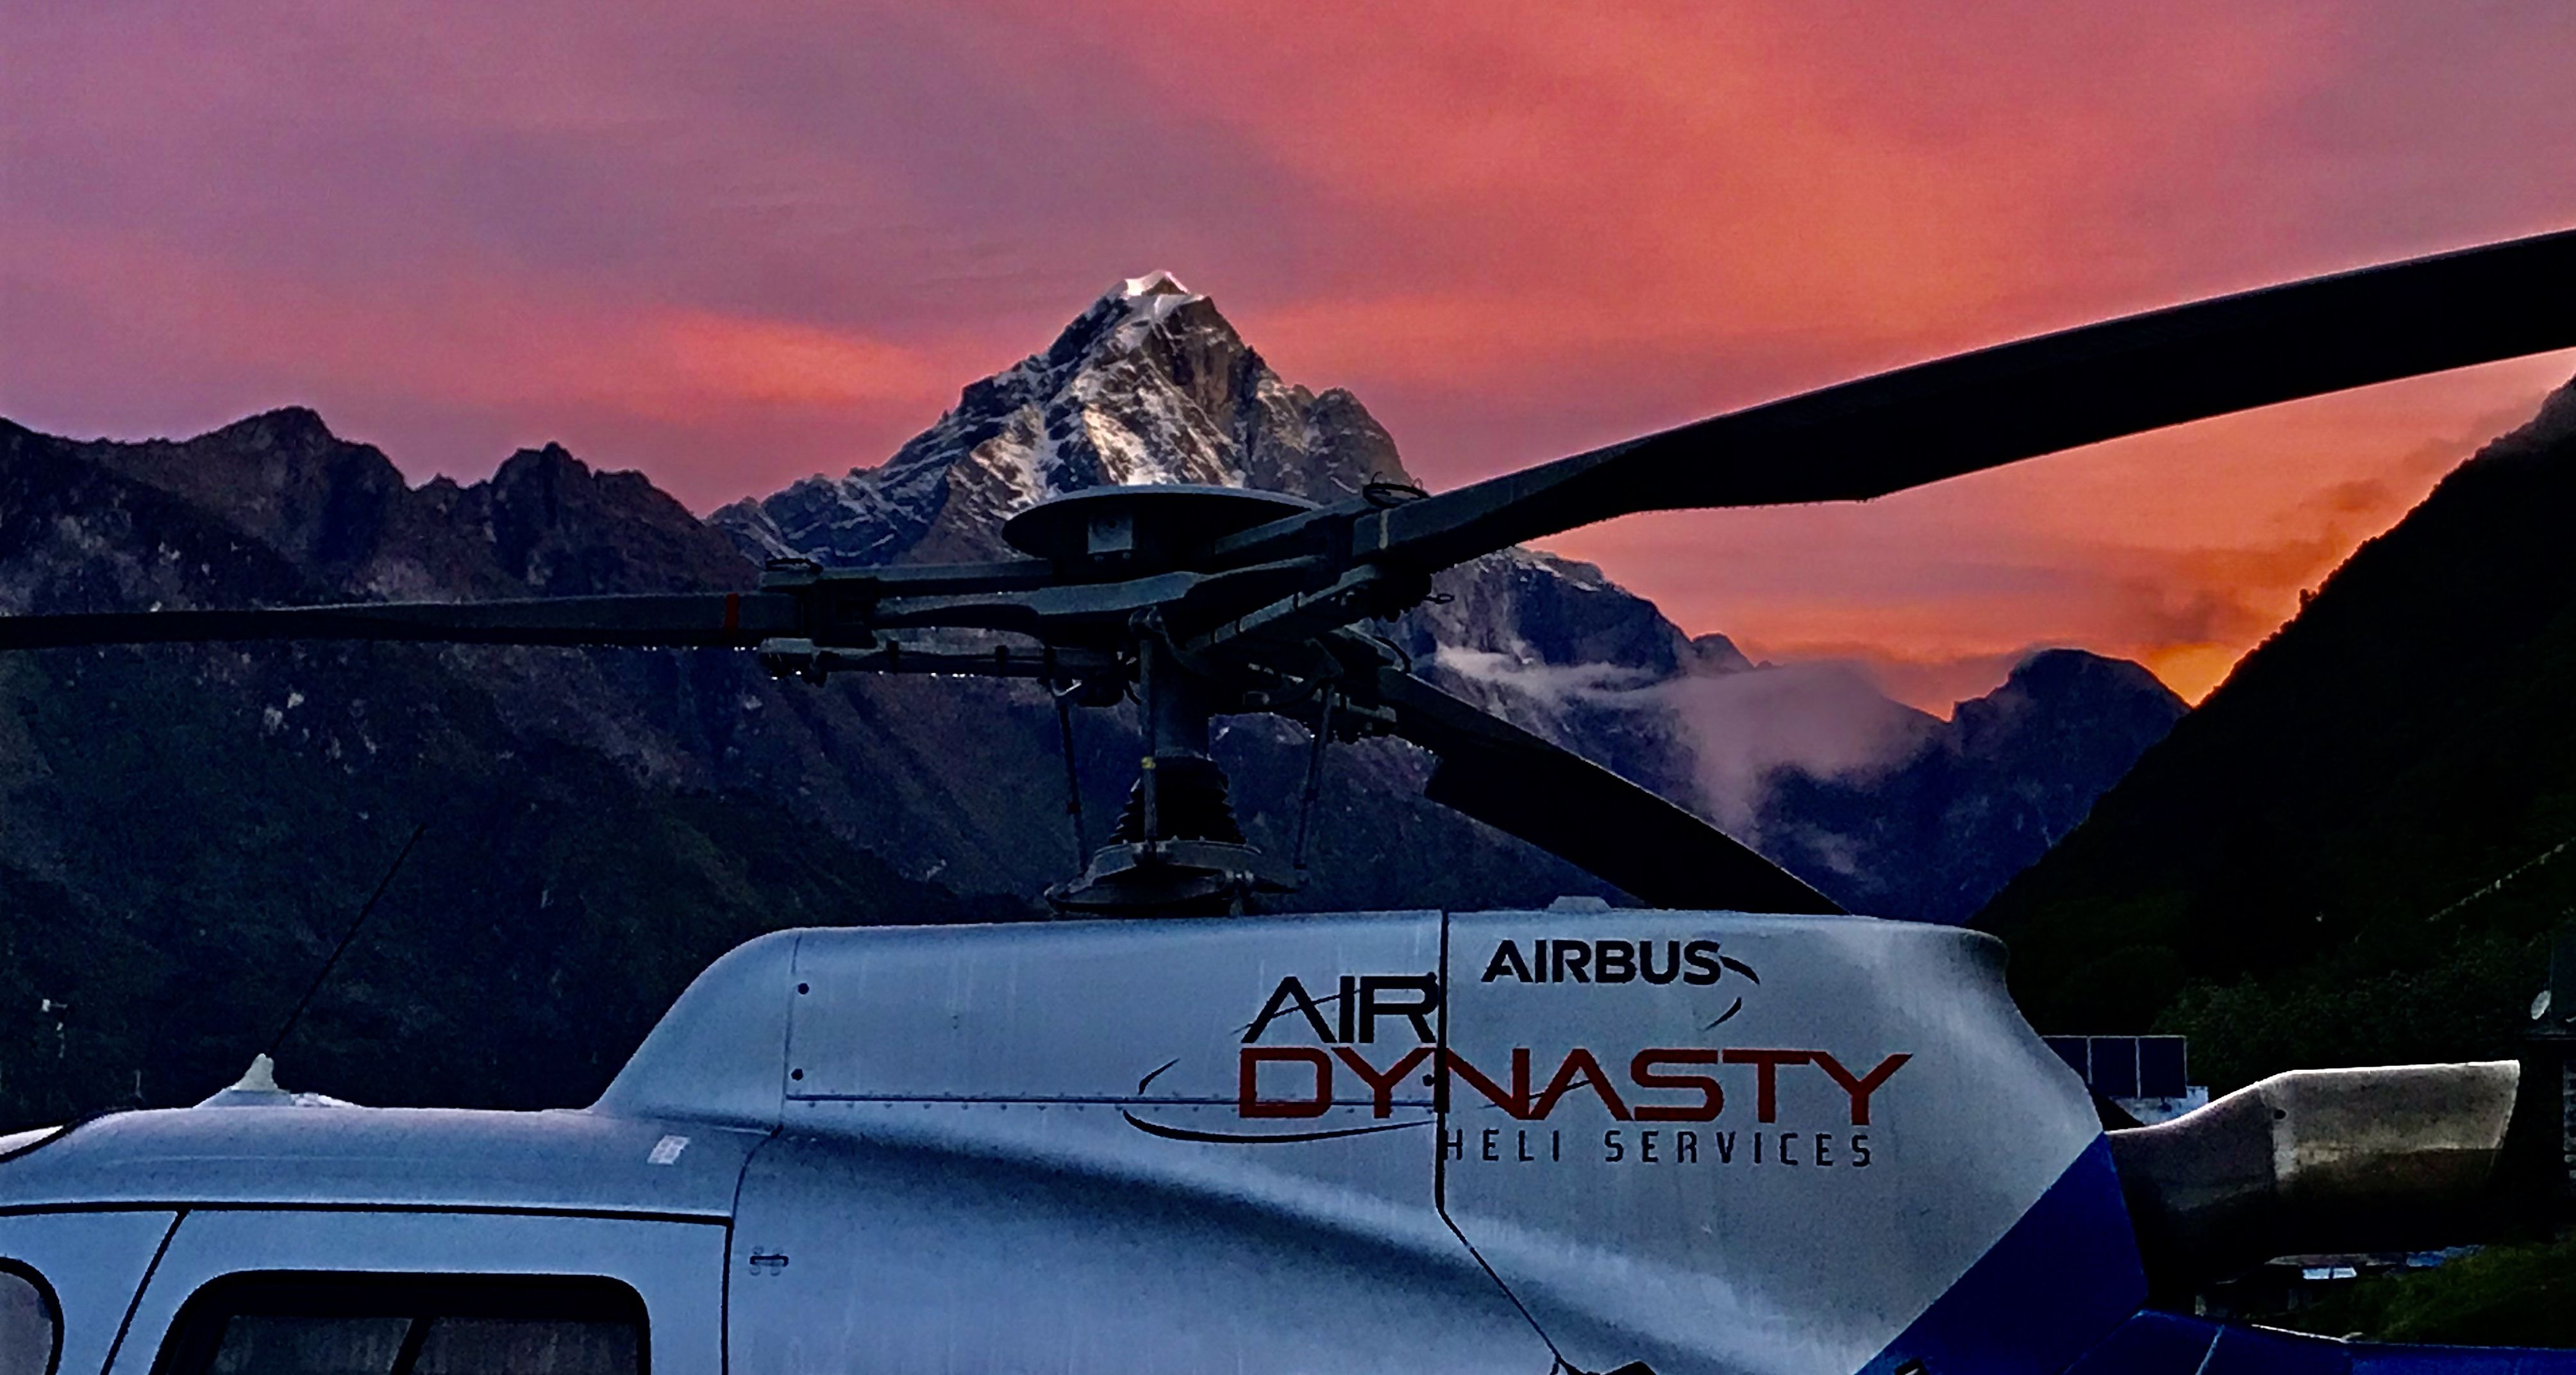 Air Dynasty Heli Services Pvt. Ltd. one of the largest